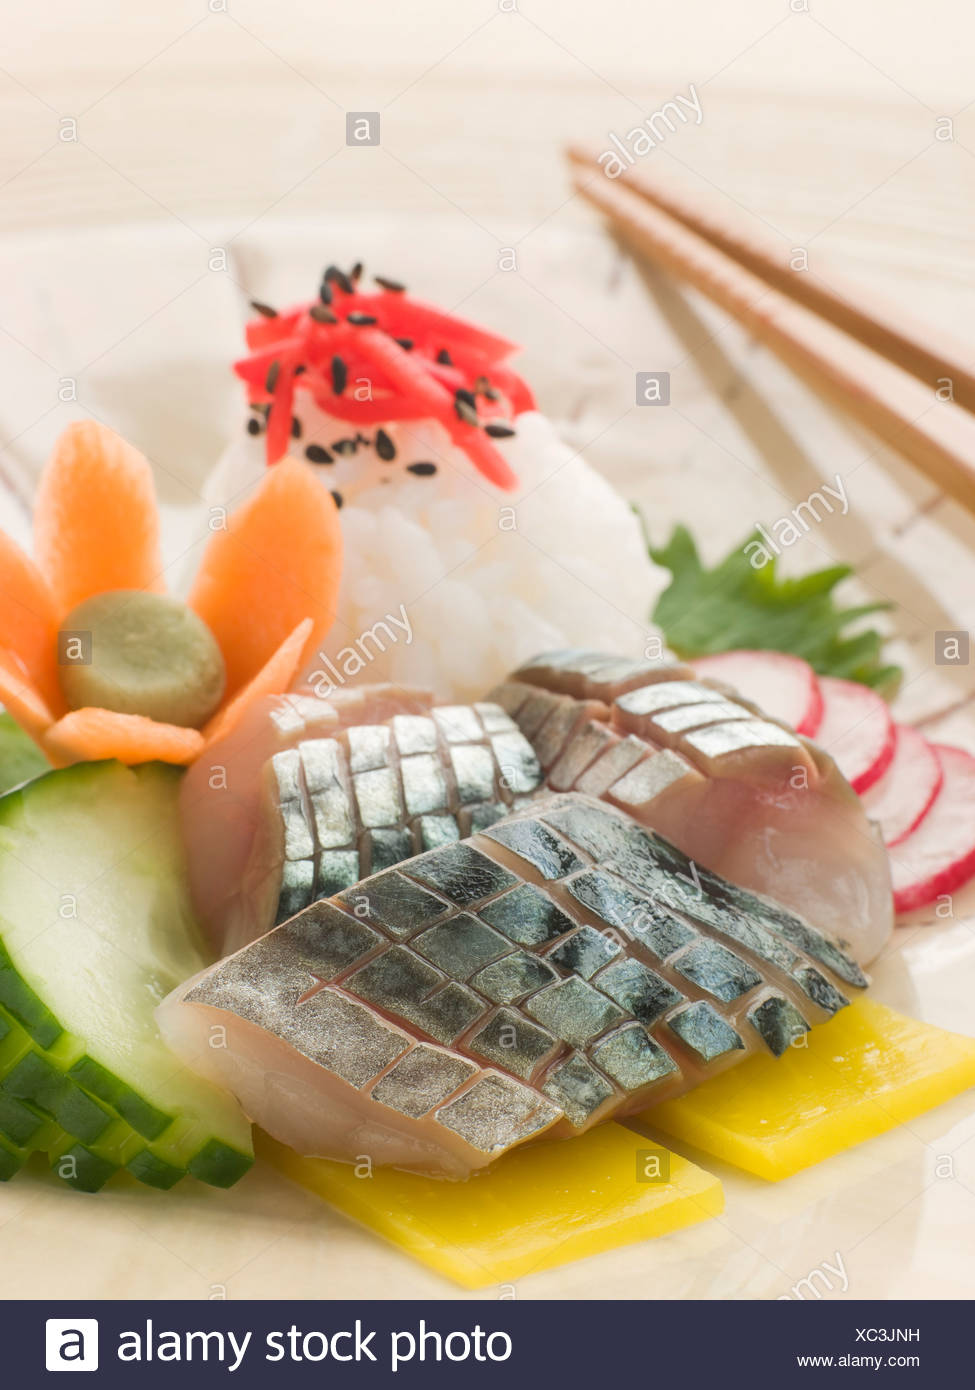 Sashimi of Mackerel with Pickled Daikon Salad and Vinegar Rice - Stock Image